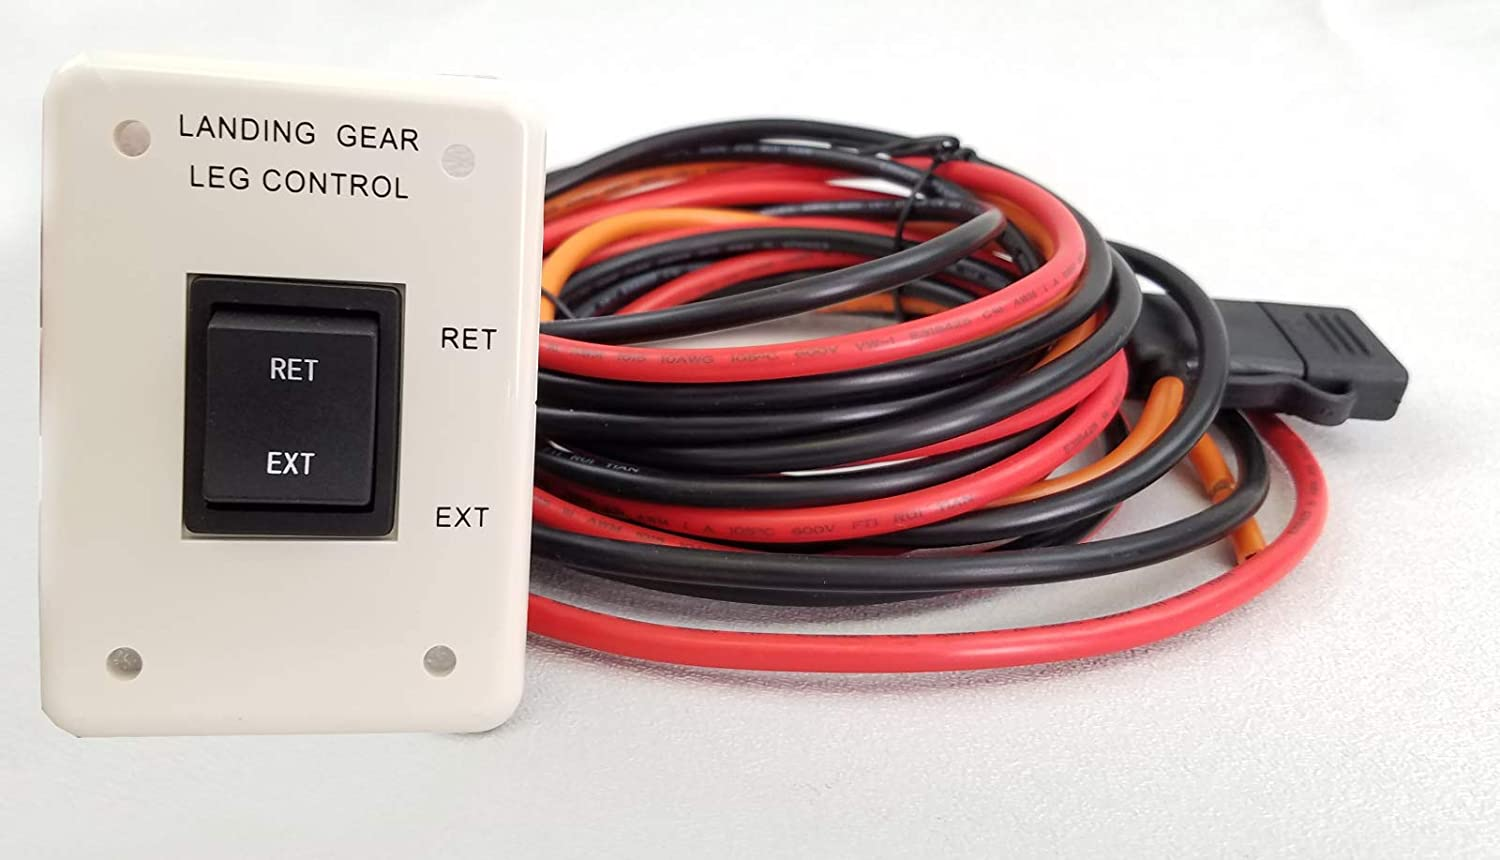 Amazon.com: New RV 5th Wheel Landing Gear Wire Harness w/Switch: Computers  & Accessories